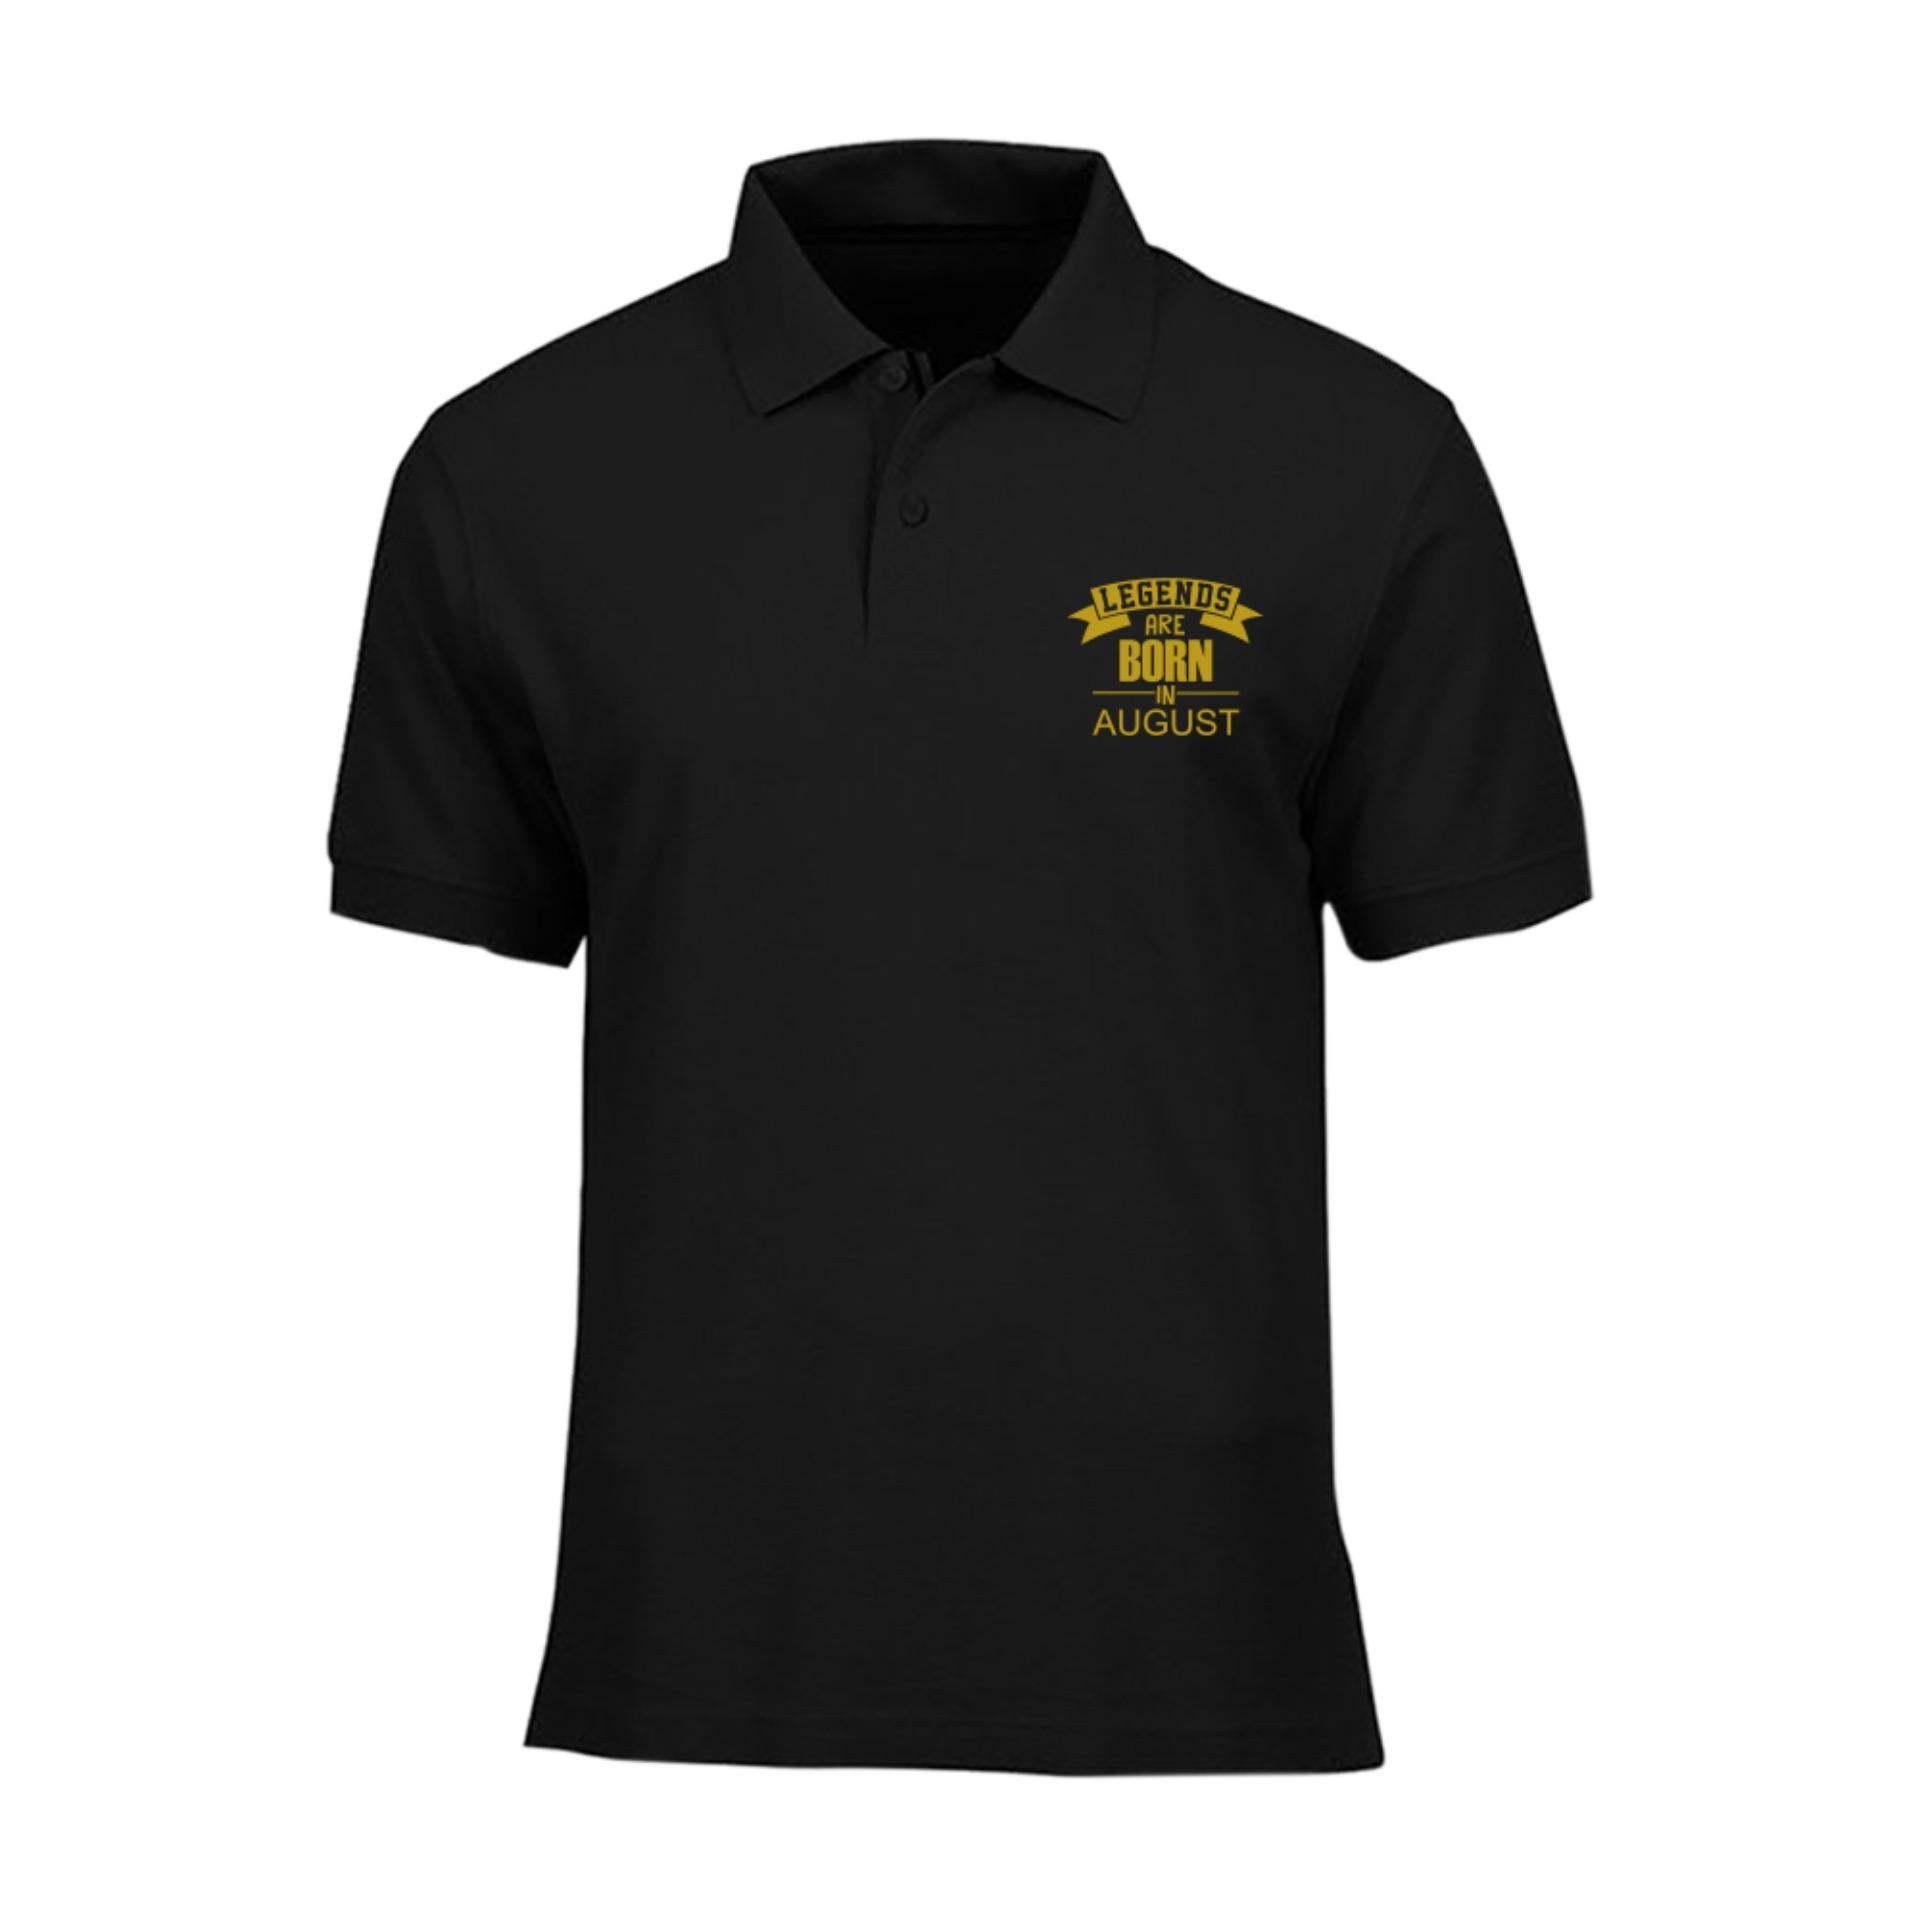 Jual Rokok Sampoerna A Mild Isi 16 Batang Harga Rp 213900 Indoclothing Polo Shirt Legends Are Born In August Hitam Gold